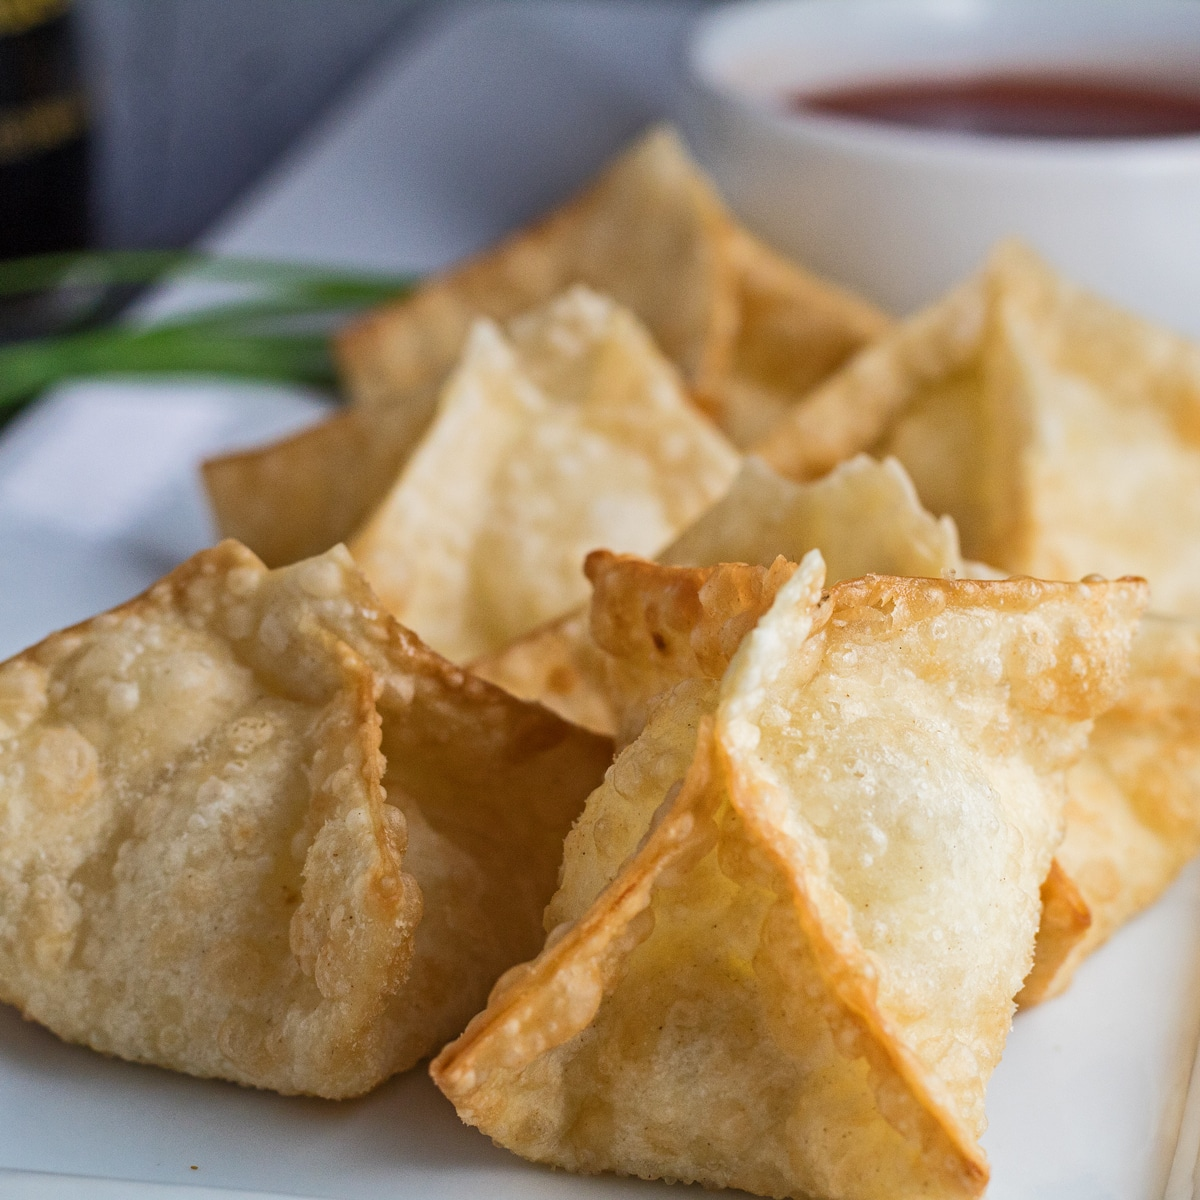 Fried crab rangoons on white plate with sweet n sour sauce.